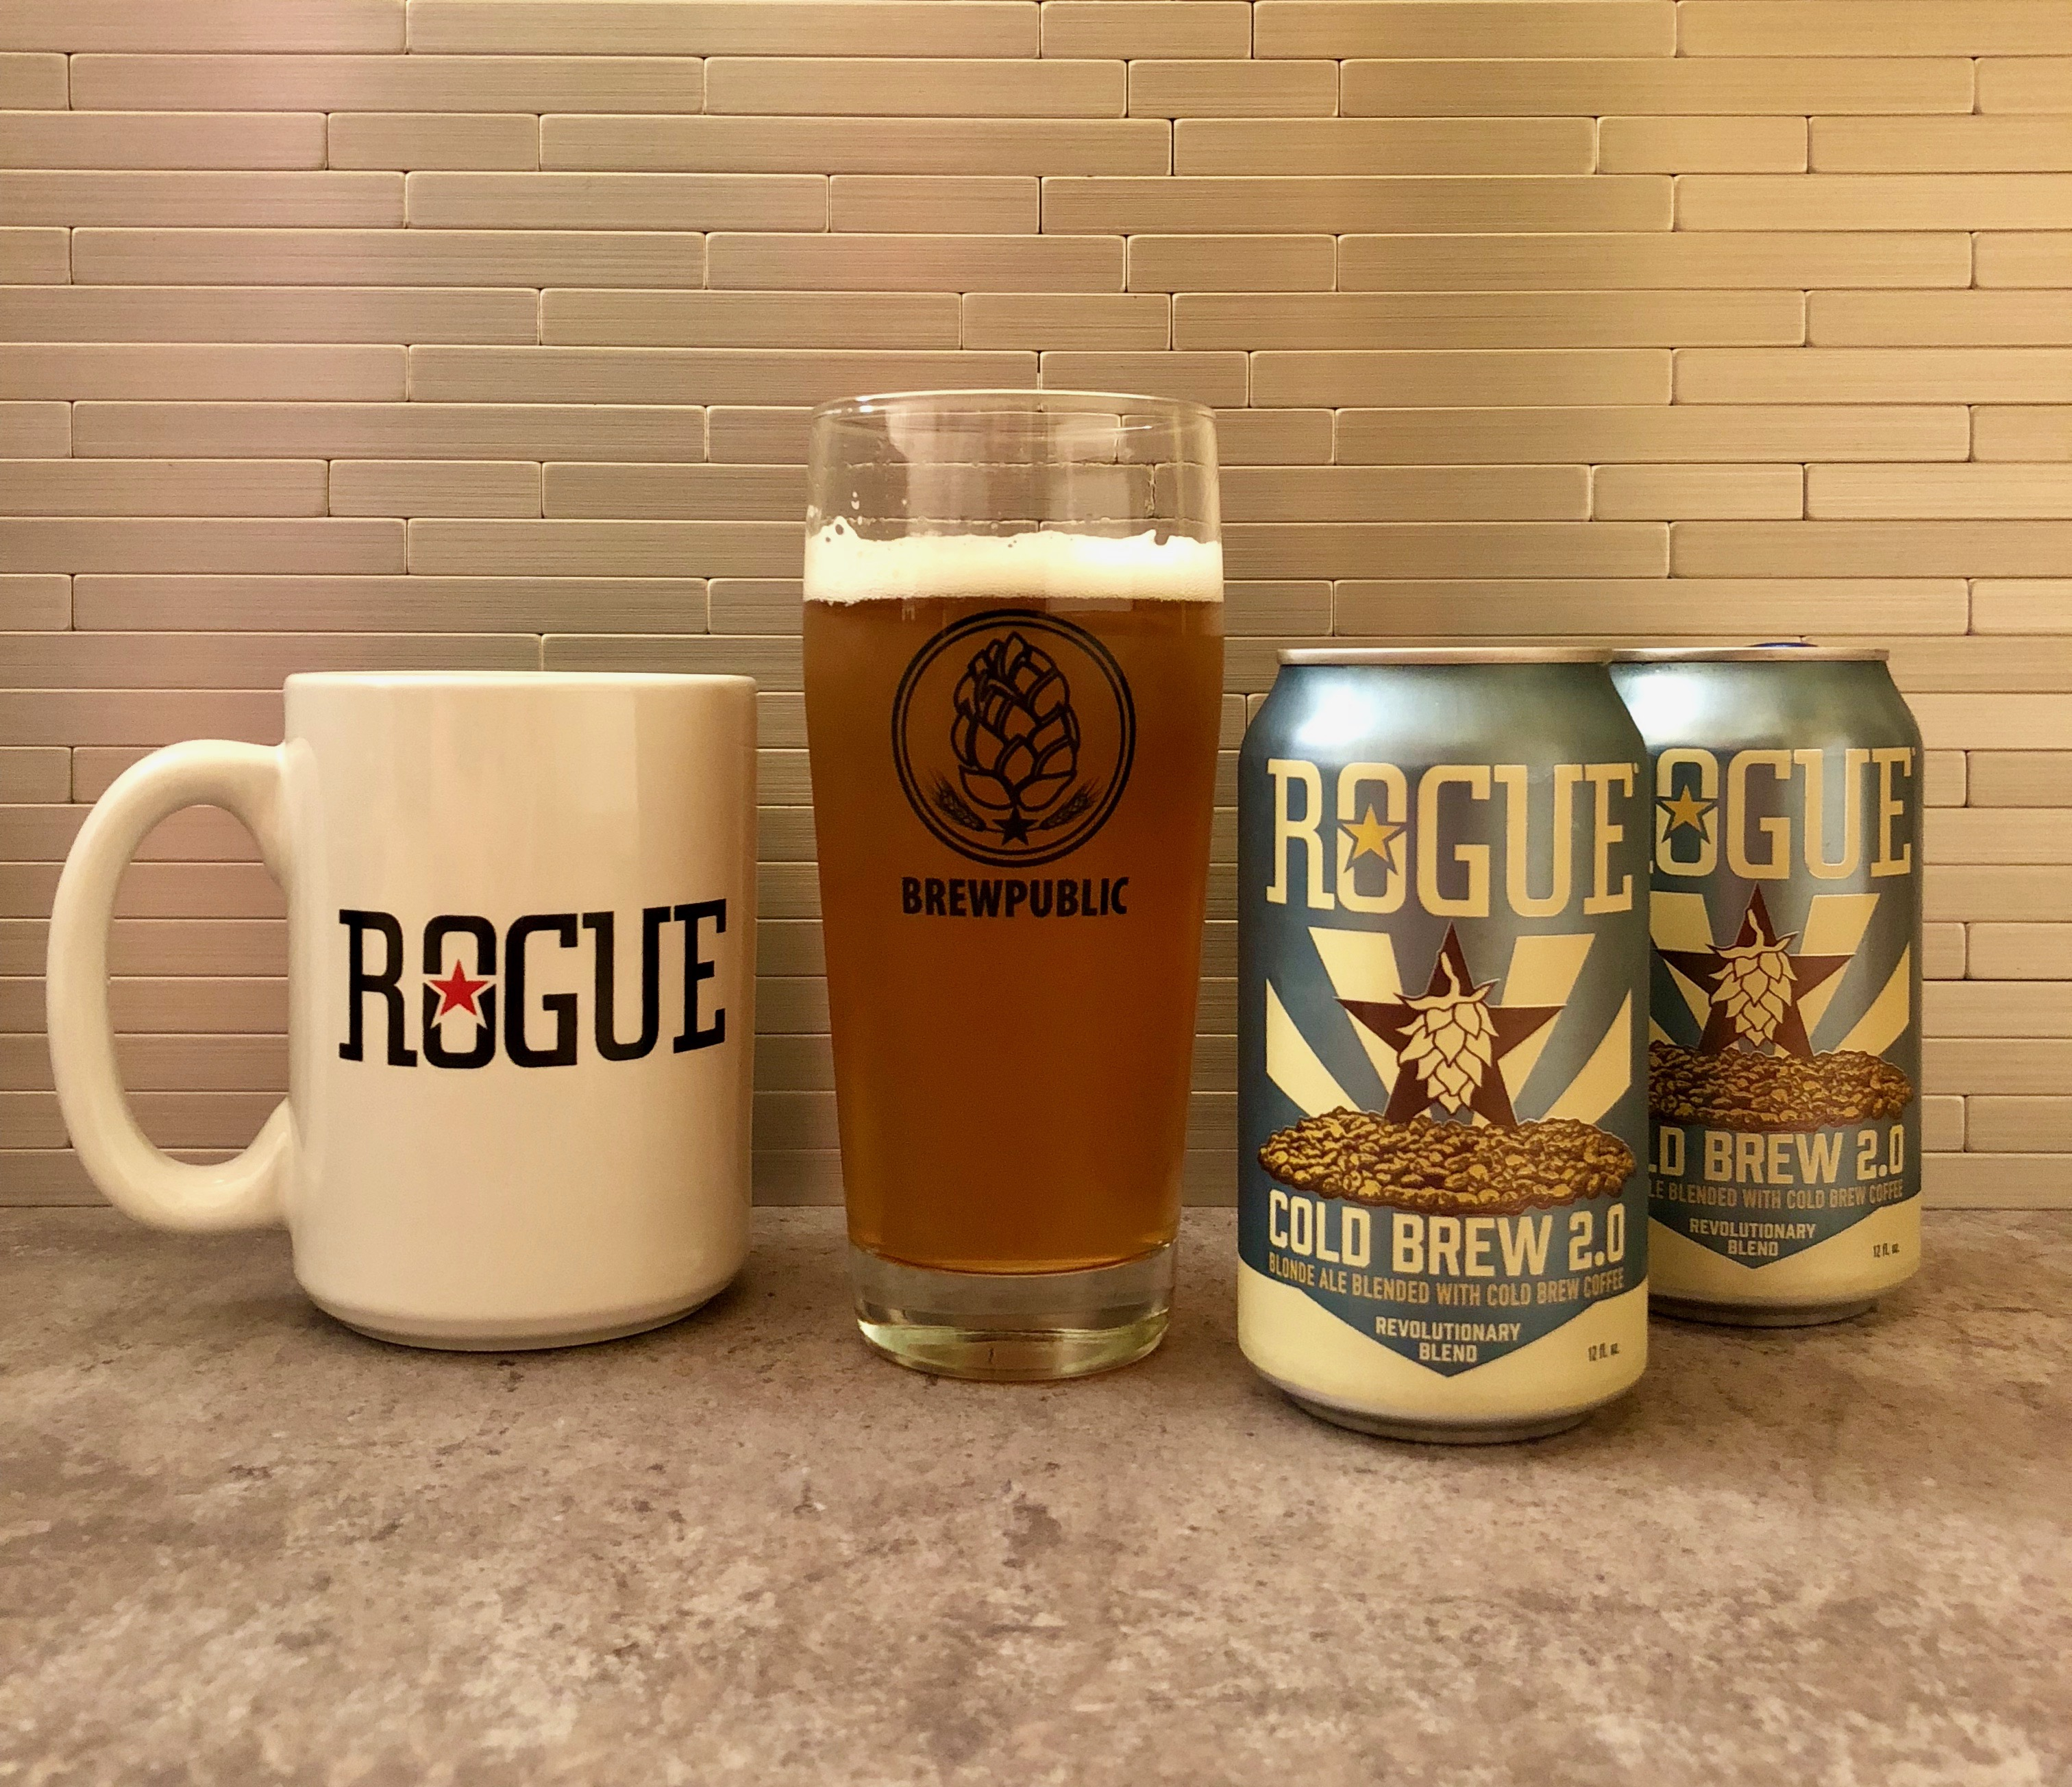 Rogue Ales Releases Cold Brew 2.0 in 12 ounce cans.